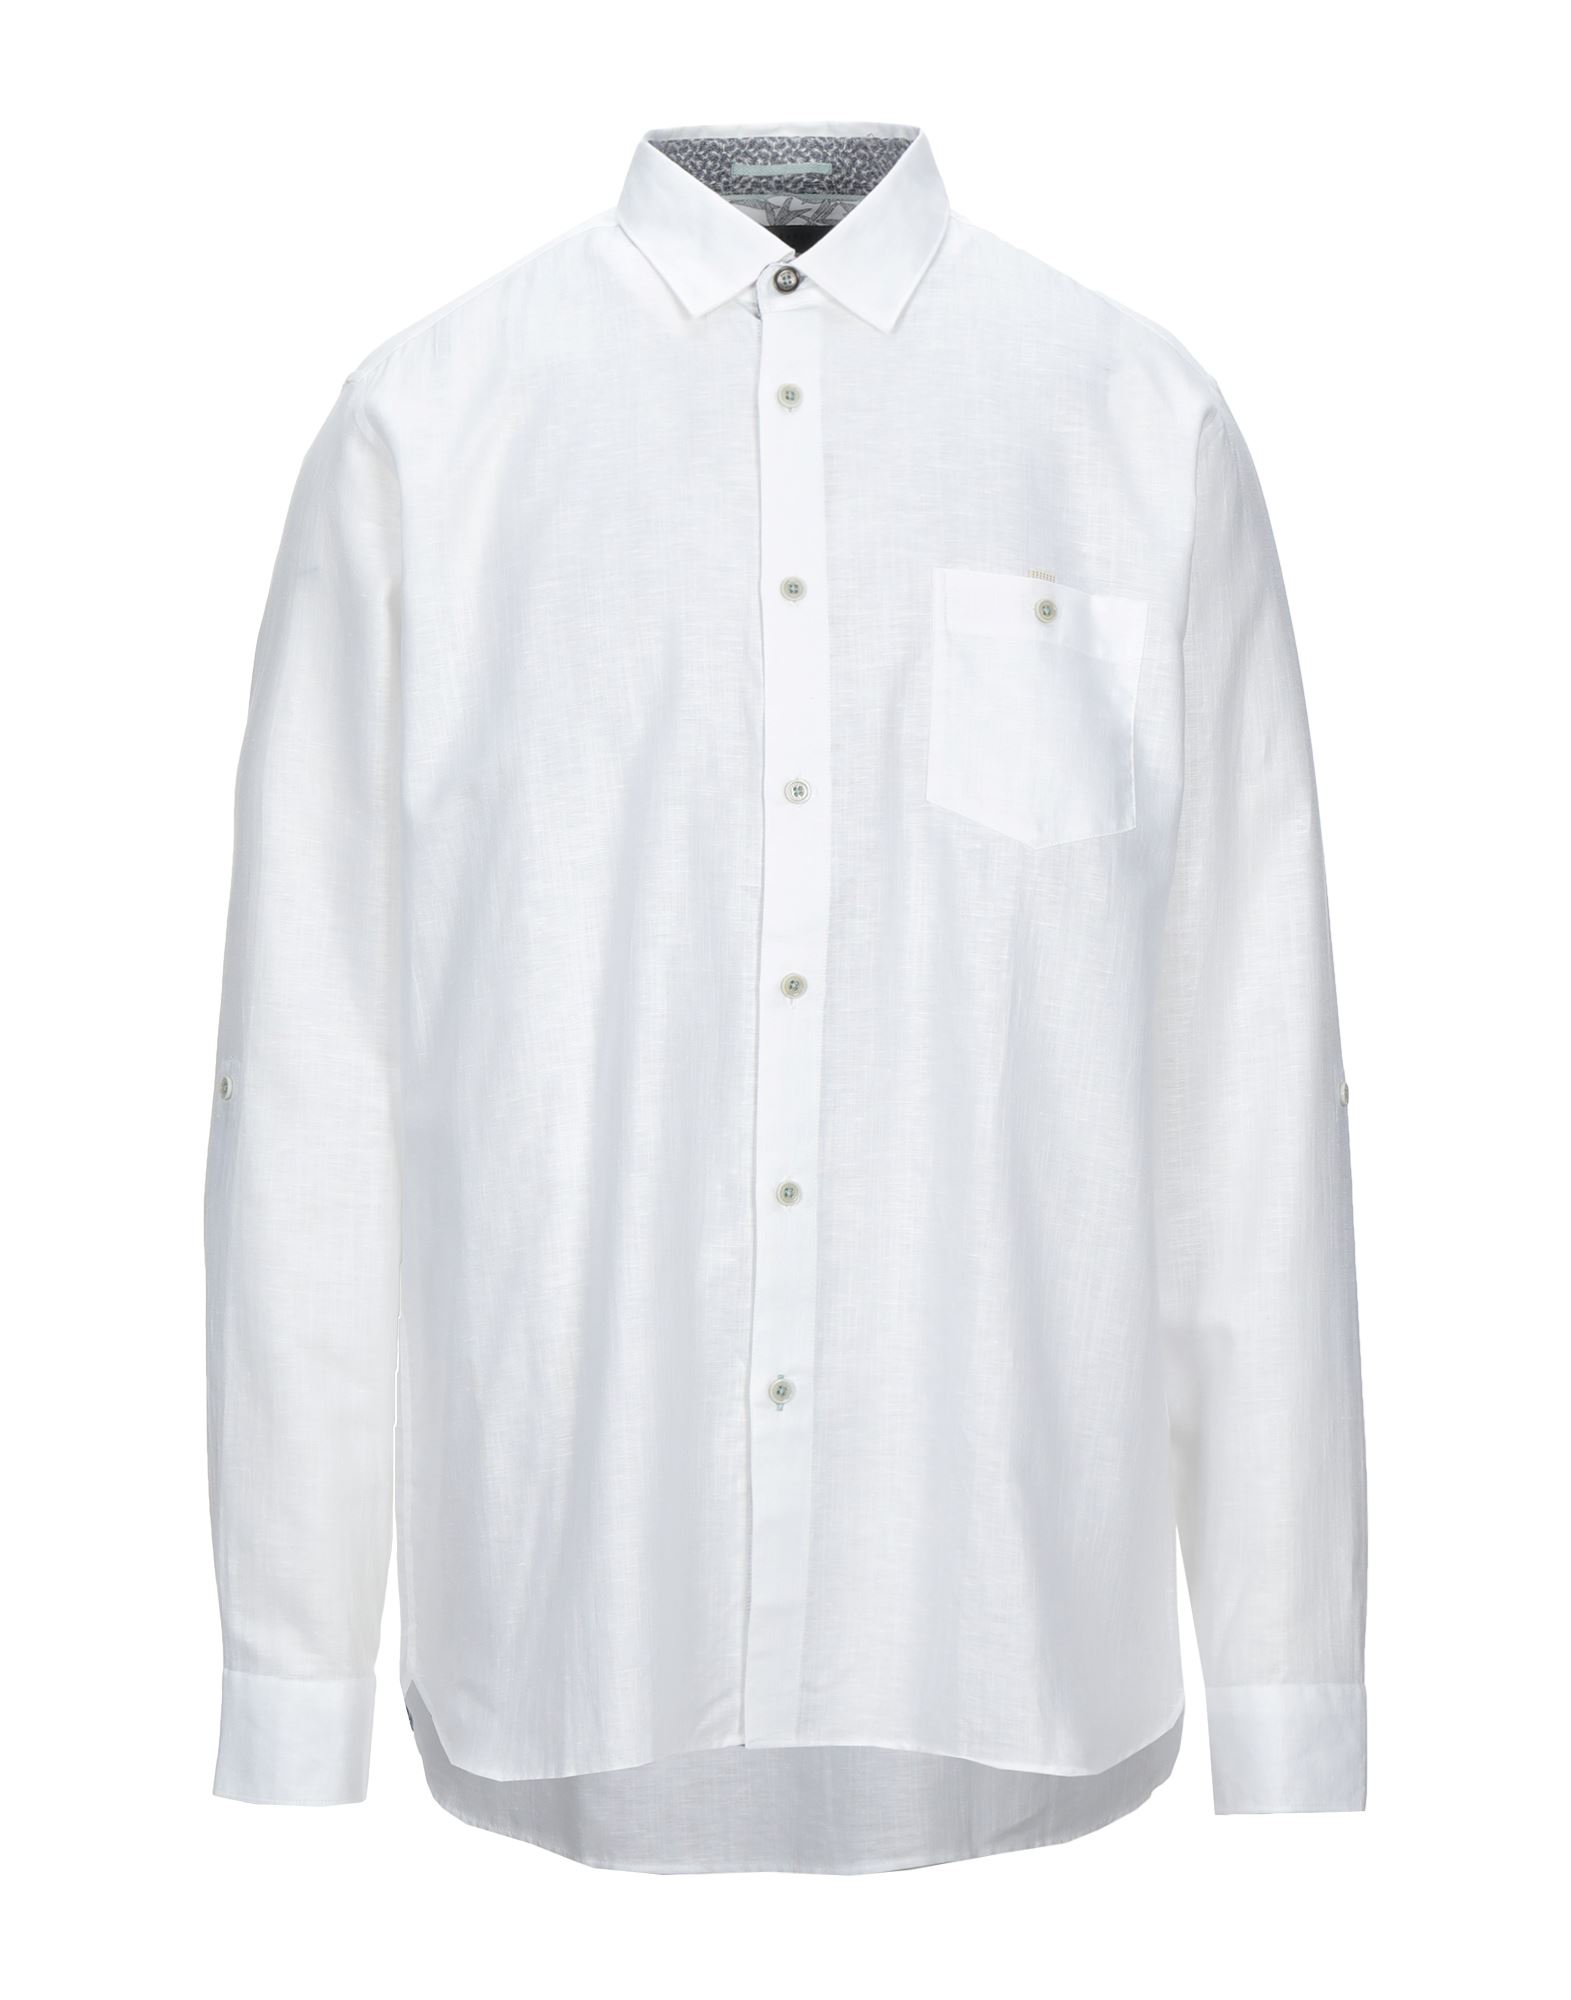 TED BAKER Shirts - Item 38959397